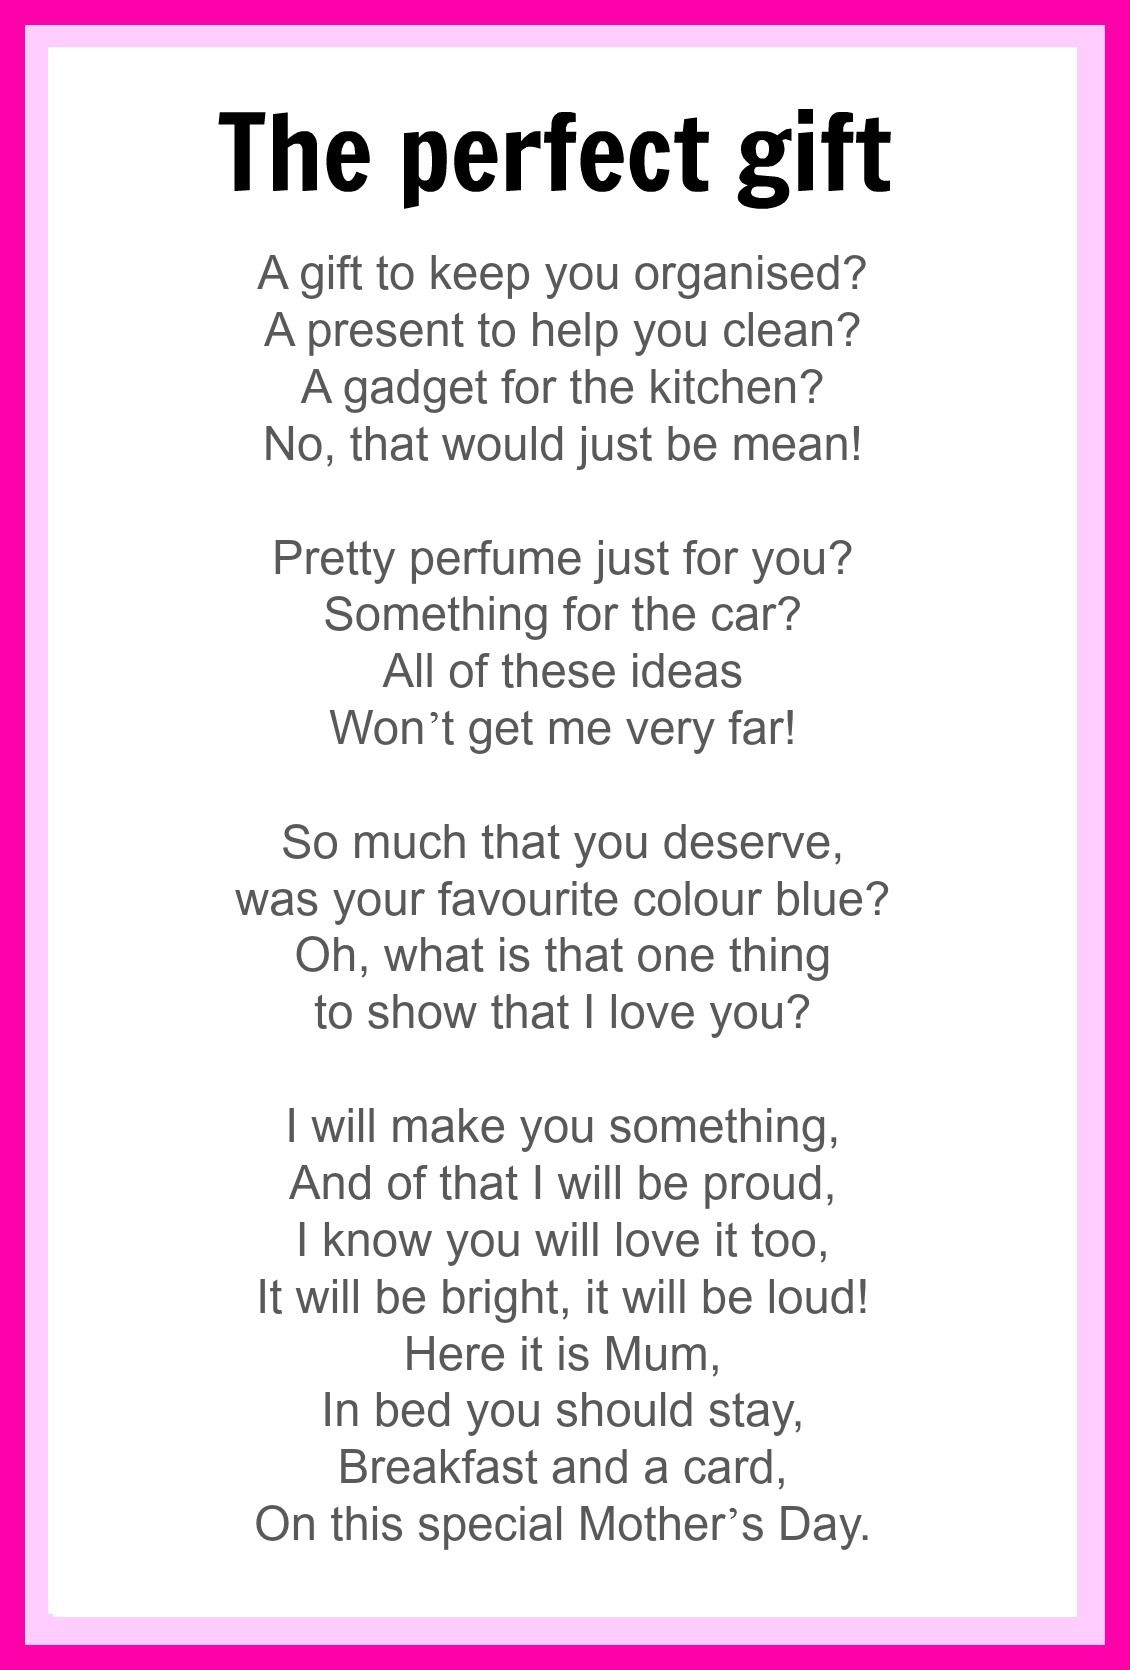 Poems About Love For Kids About Life About About Friendship For Him On Teachers For Her